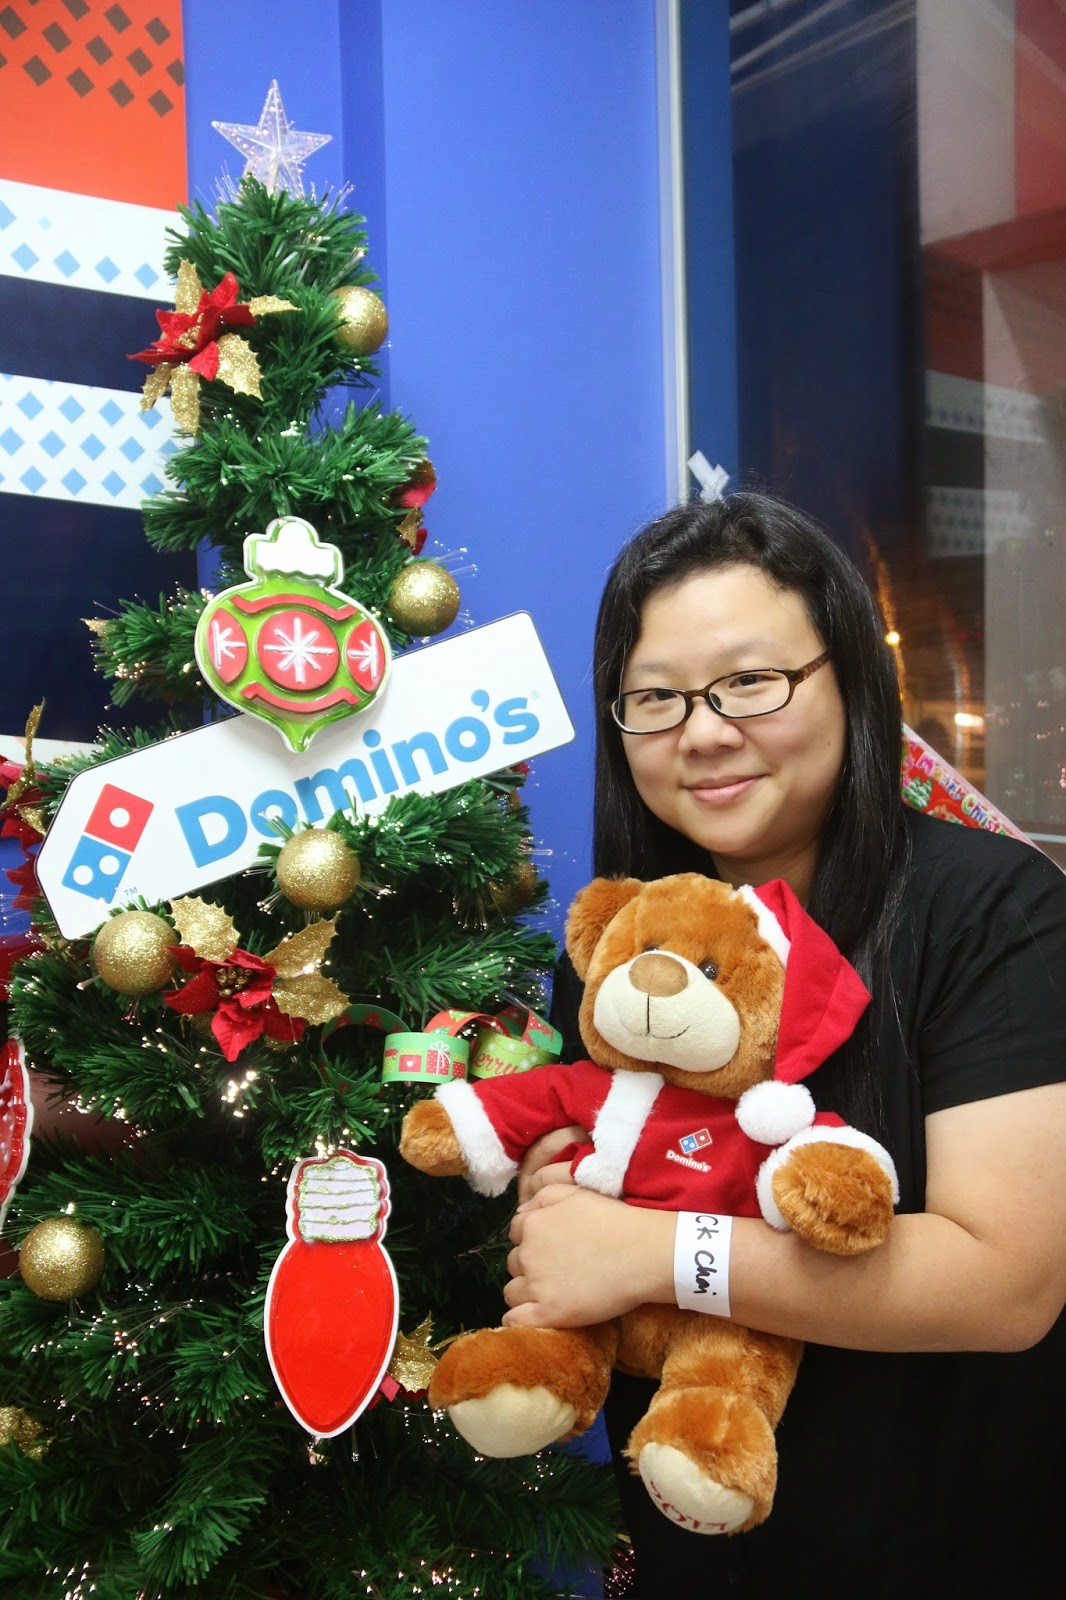 Celebrate Christmas with 50% off All Domino's Pizzas | Puzzle Of ...